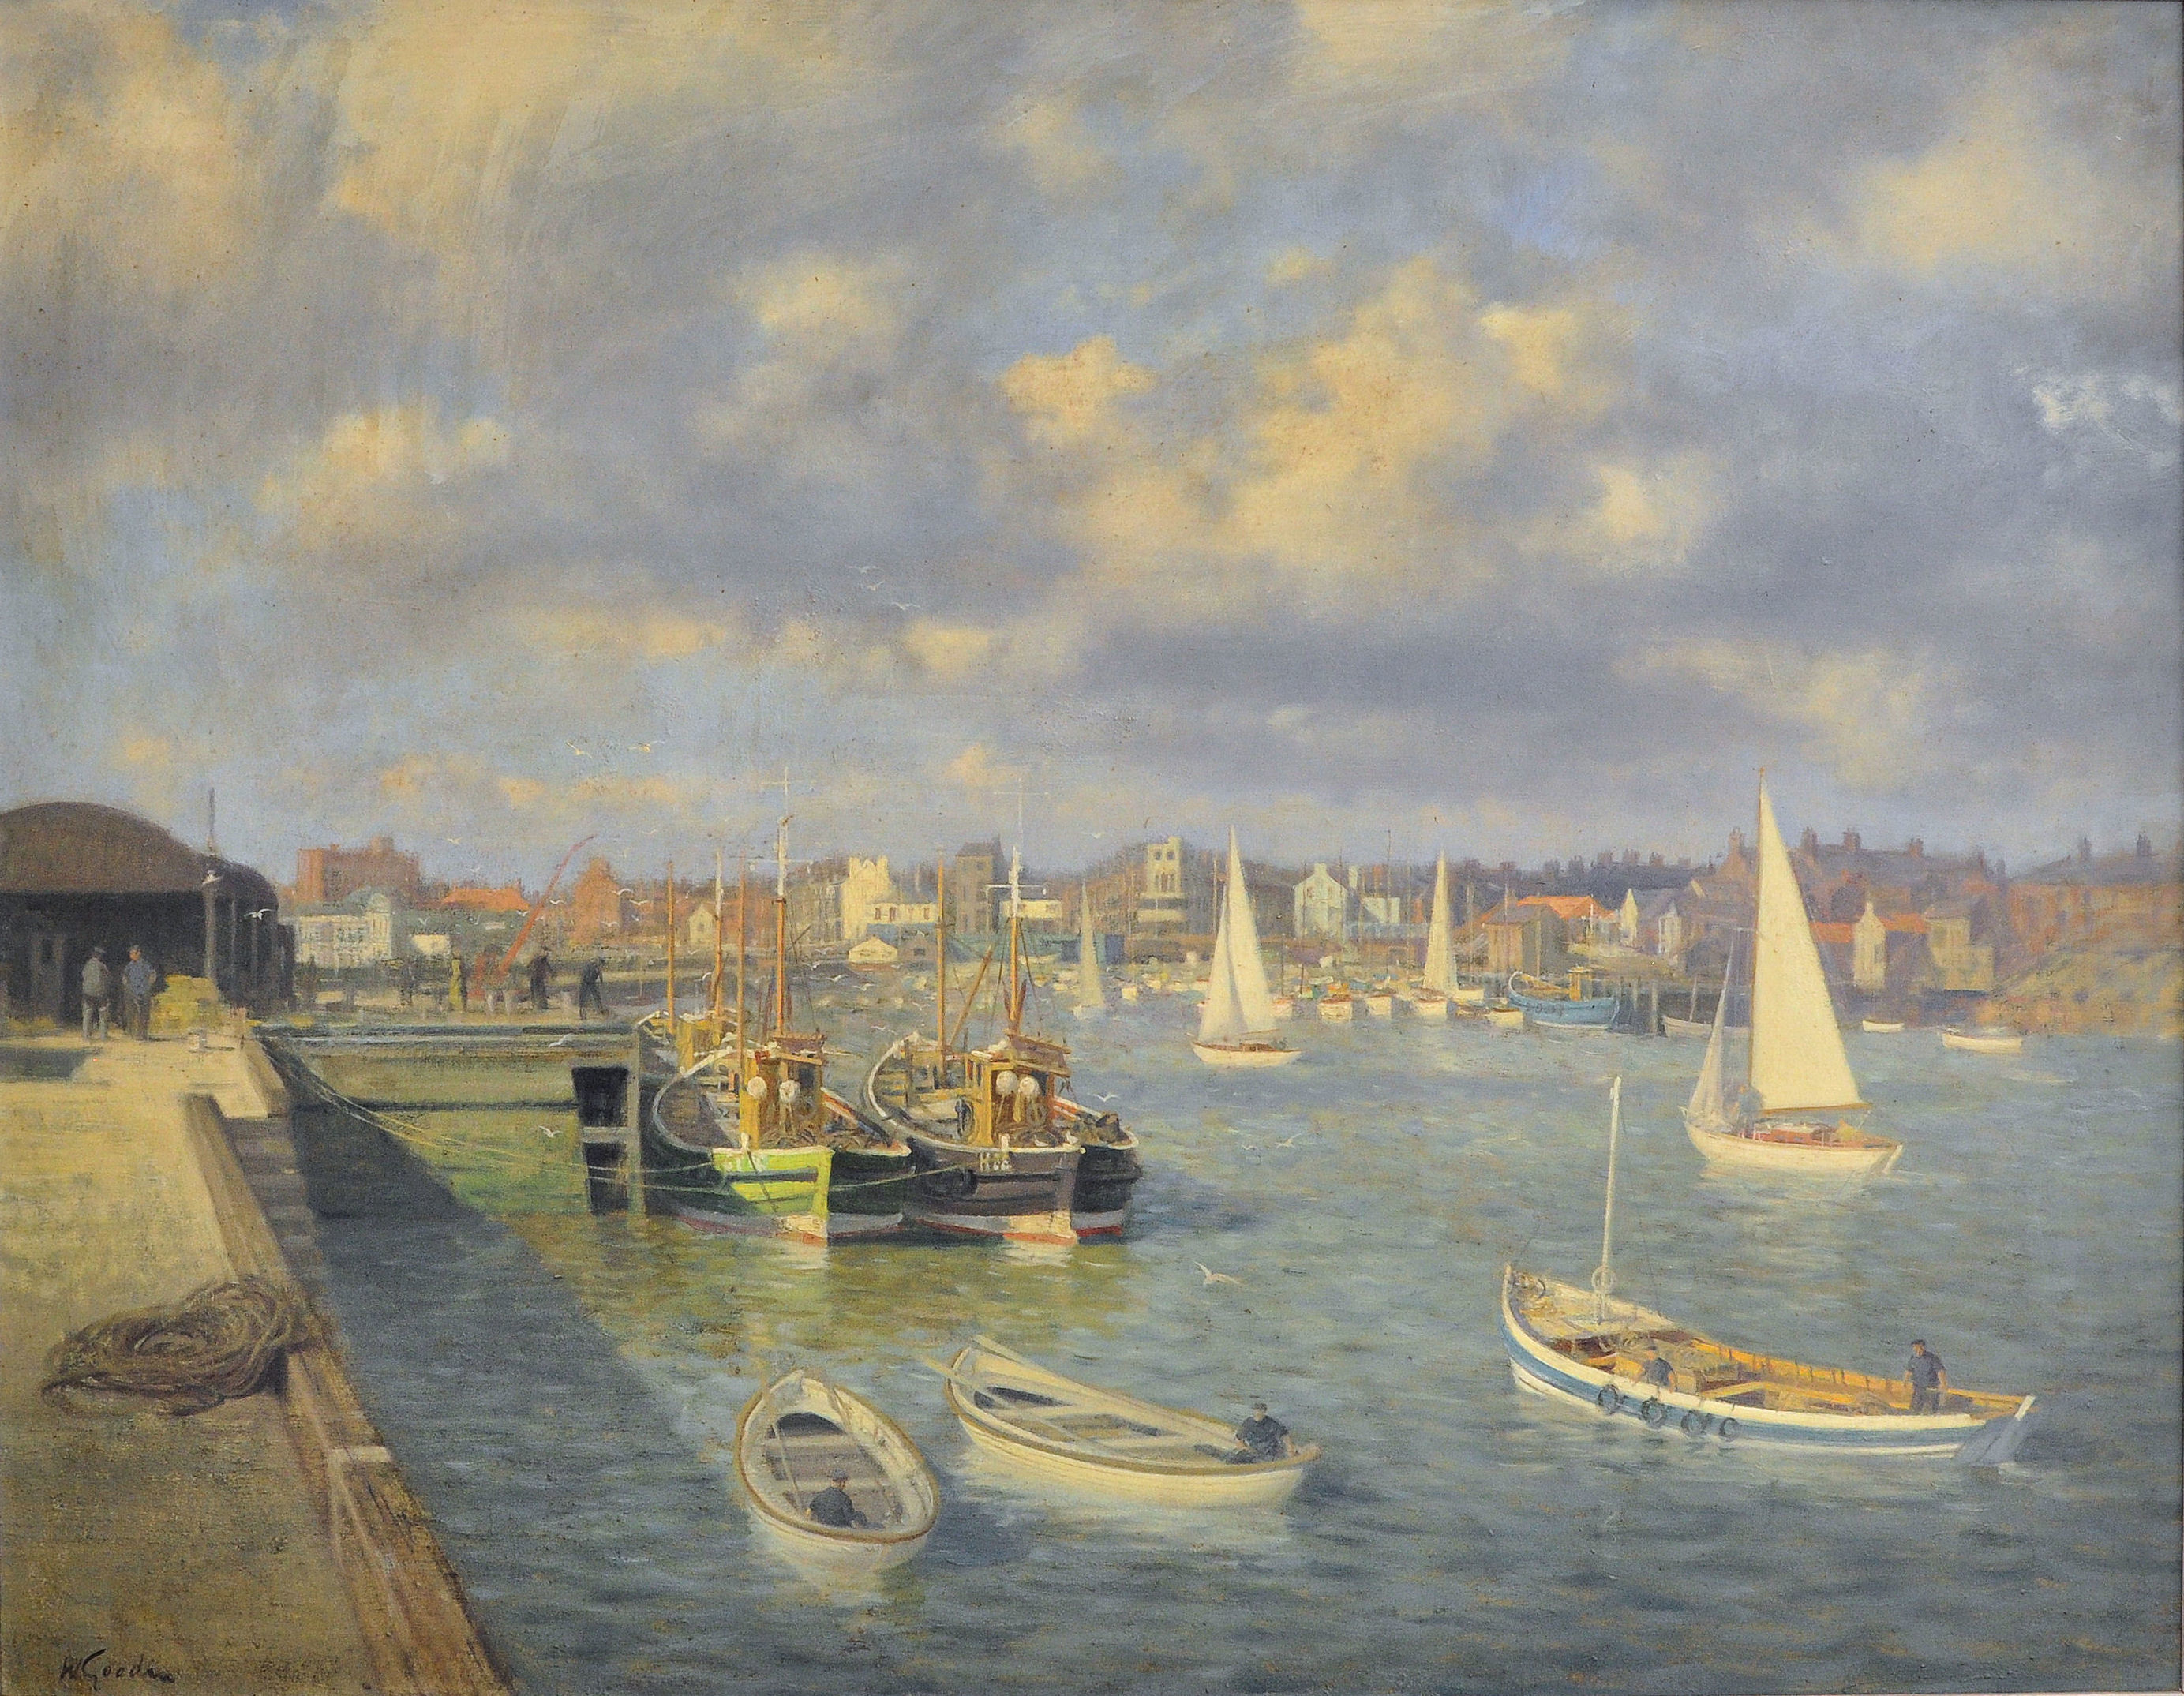 "WALTER GOODIN (1907-1992); Bridlington Harbour with fishing cobles, sailing boats and figures on the quayside, Oil on Board, signed. 28 1/4"" (72cms) x 36 1/2"" (92cms)."